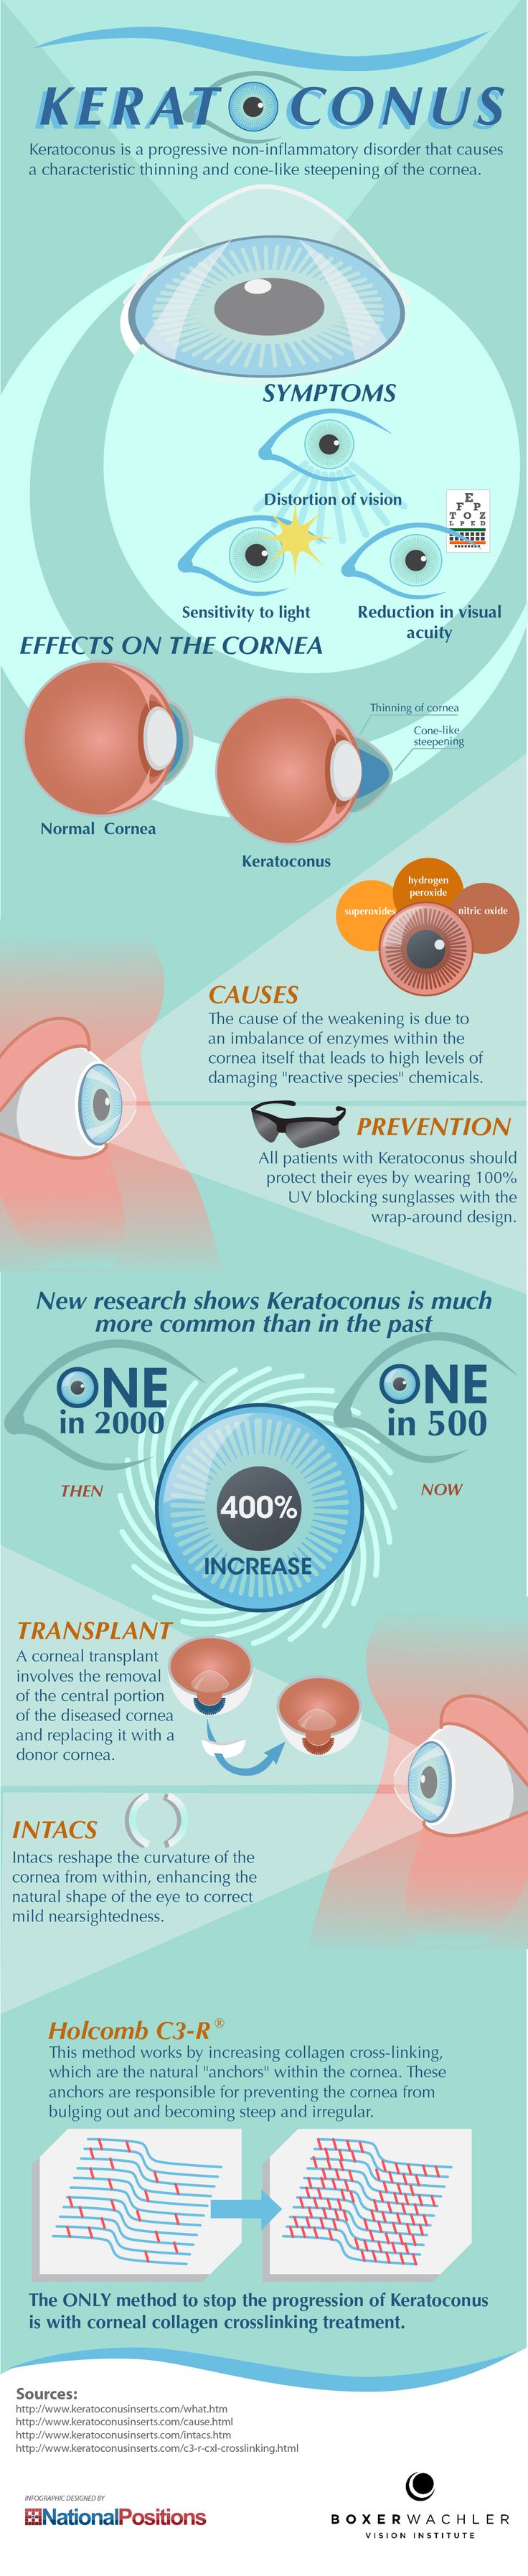 Depending on the progression of the keratoconus, an ophthalmologist might recommend a lens such as contacts or intacs. If the condition has progressed far enough, a corneal transplant might be needed. Another treatment option is a method called collagen cross-linking. An ophthalmologist that specializes in keratoconus will best be able to choose the most effective treatment for the patient.